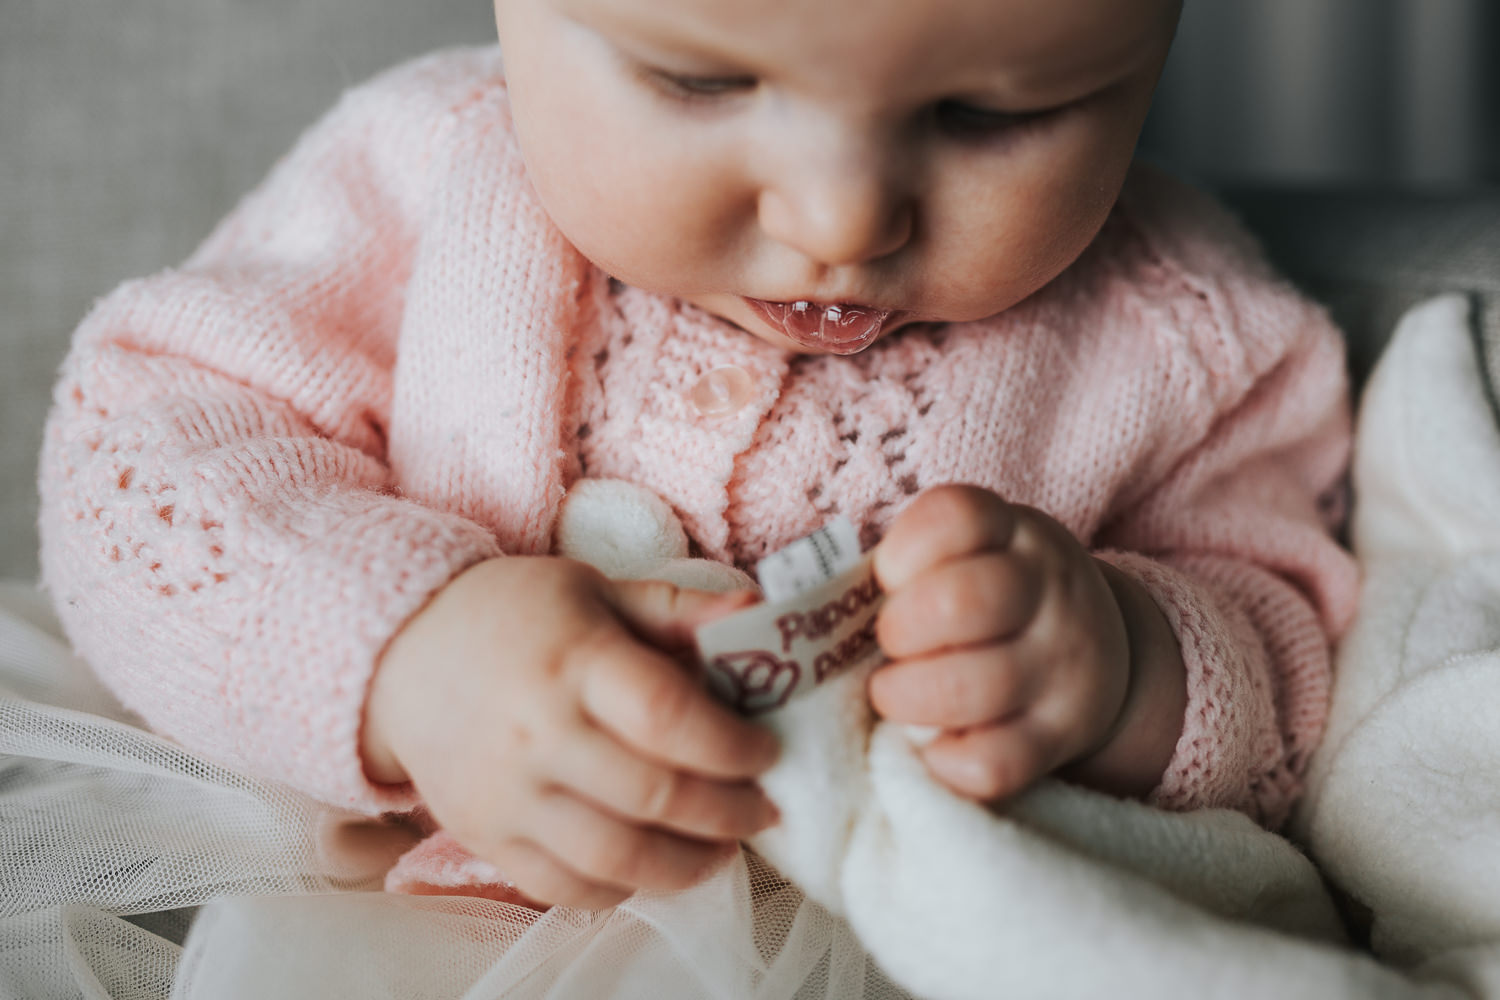 5 month old baby girl in pink sweater playing with toy and drooling - Barrie in-home photography